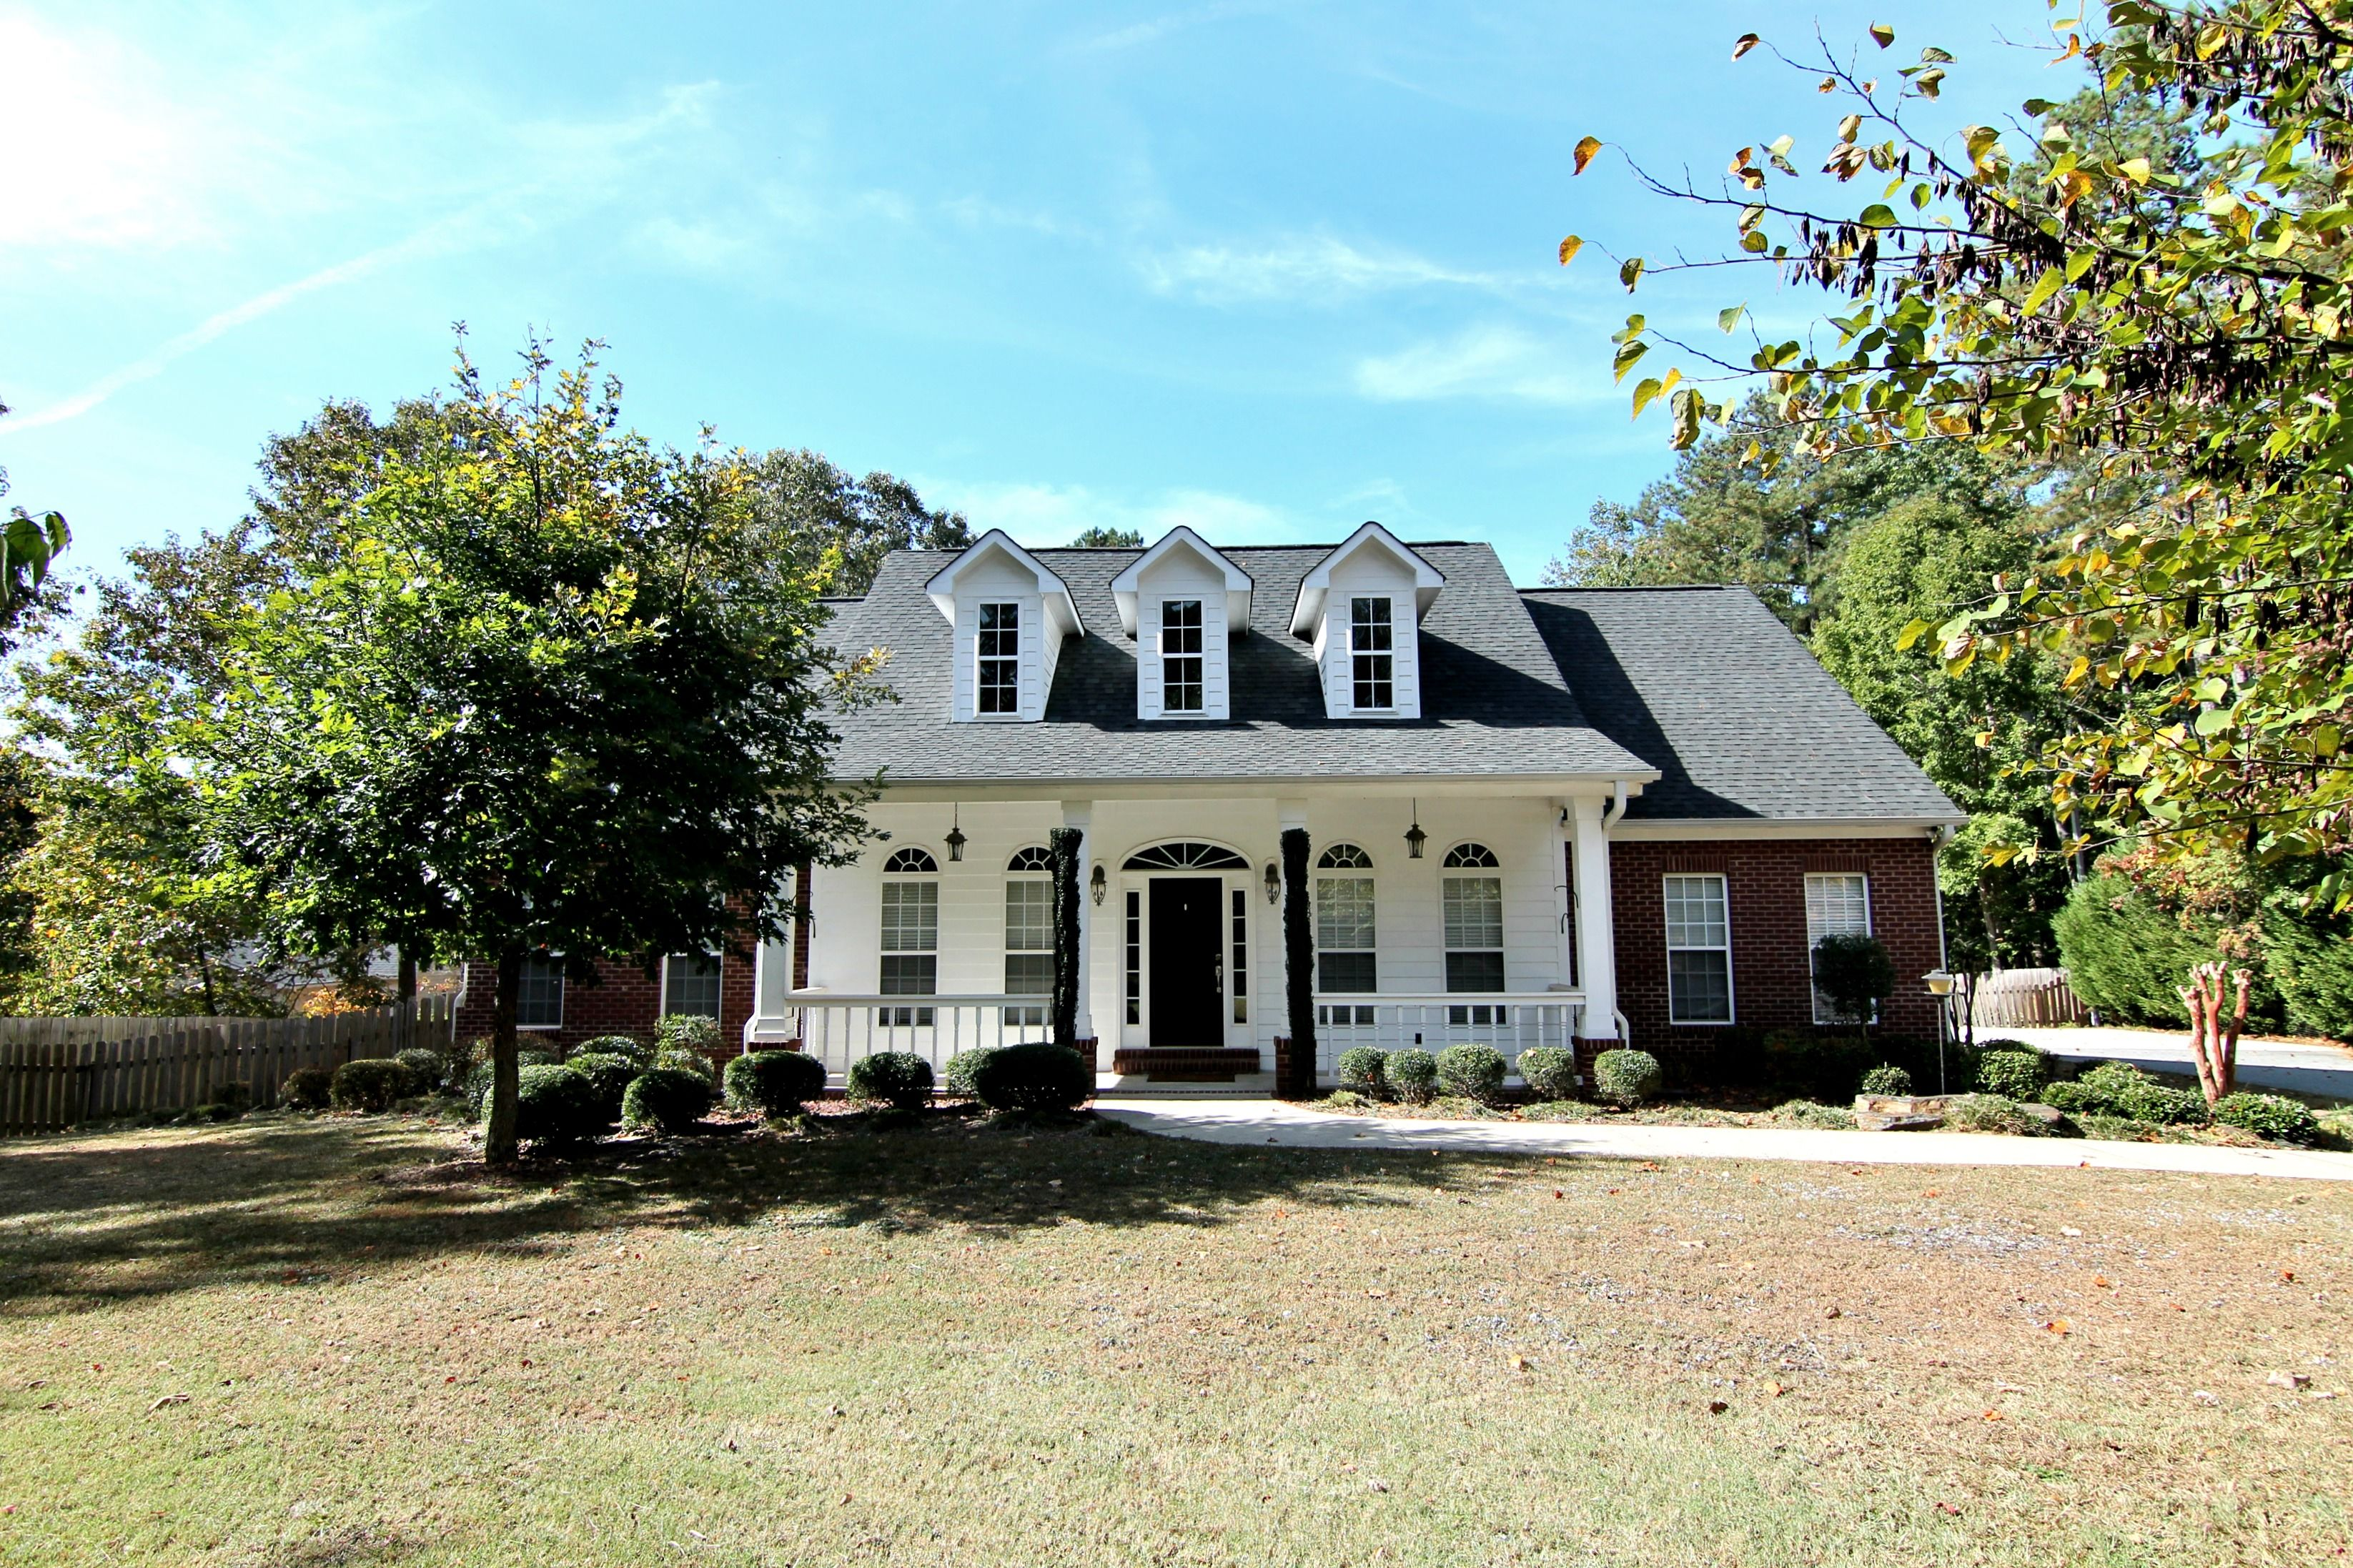 870 Hickory Nut Lane Lawrenceville Ga 30043 Home For Rent Renting A House House For Lease Cape Cod Style House